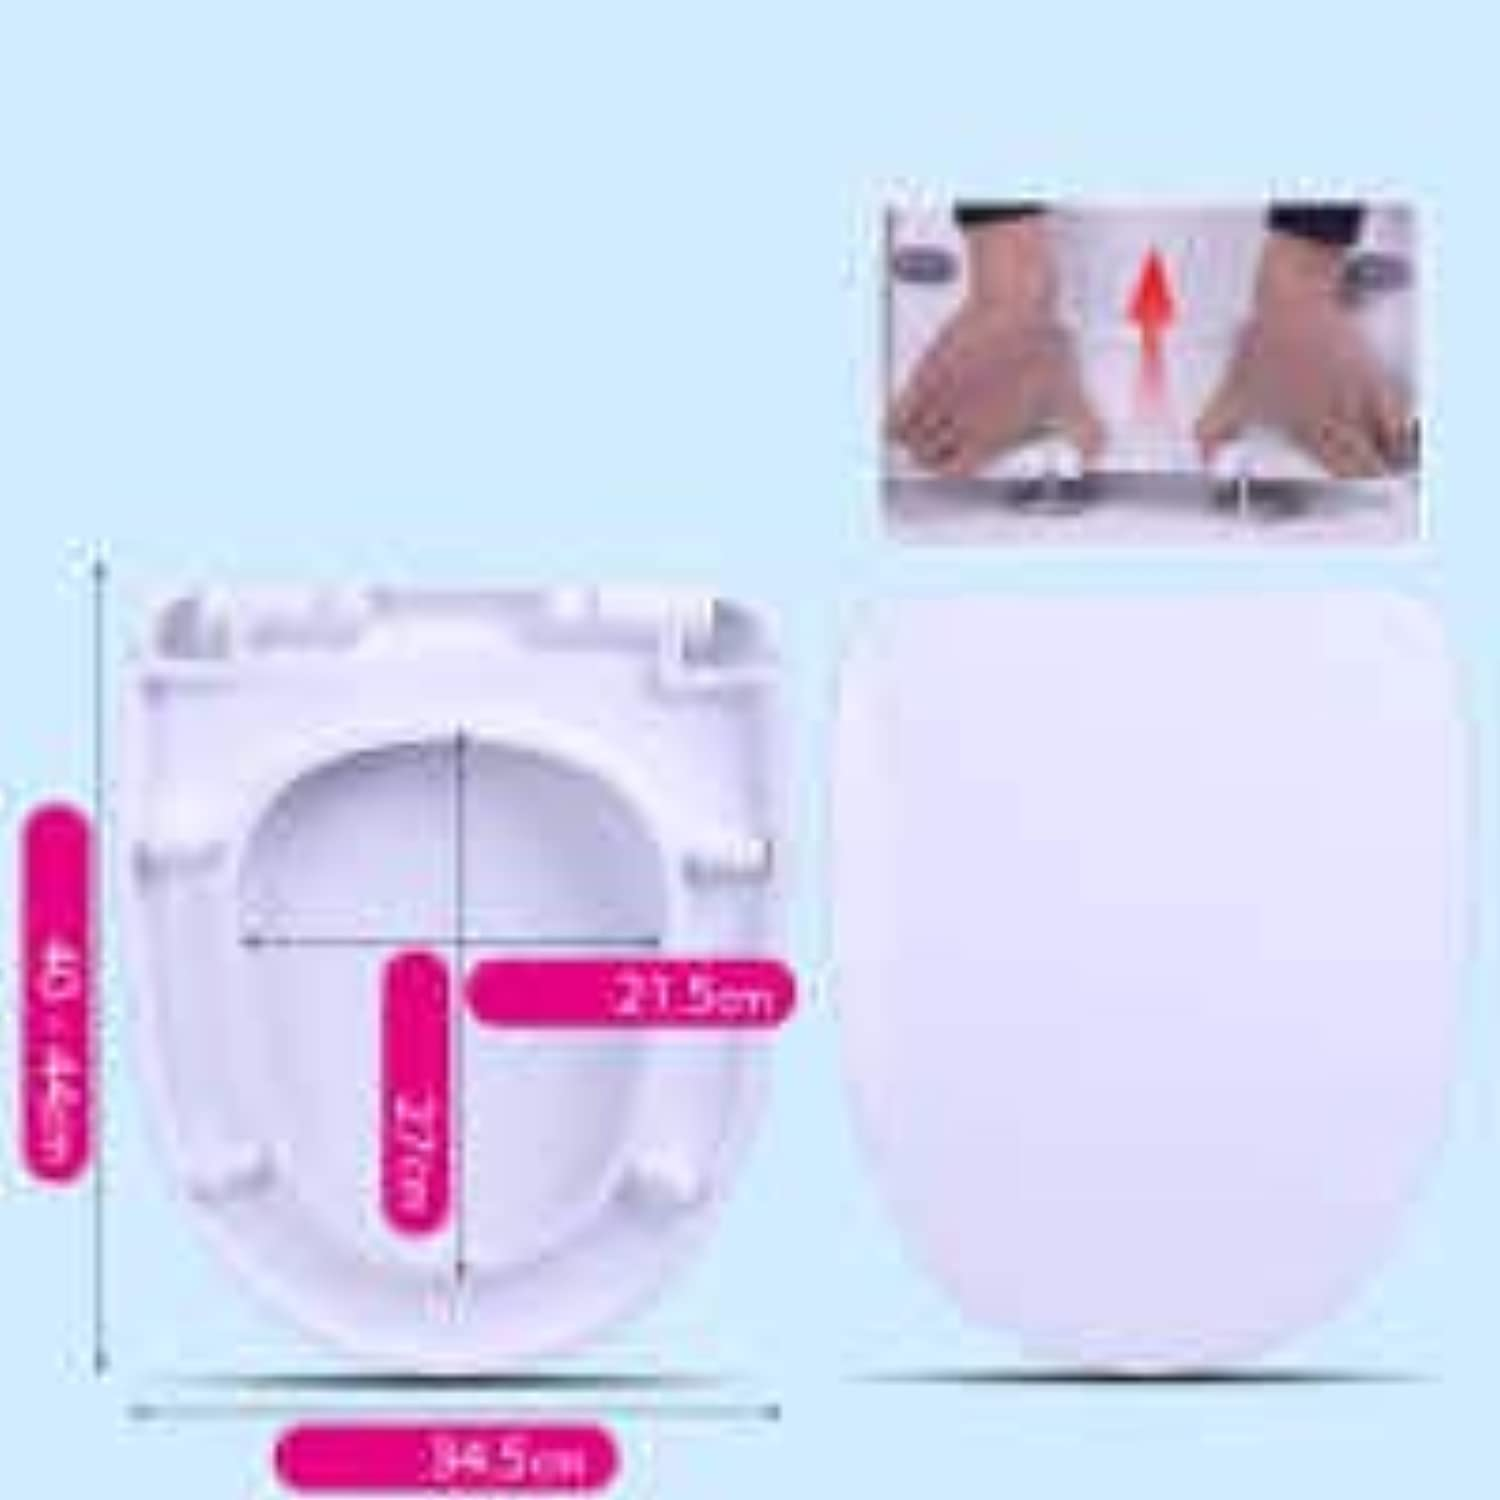 Toilet Seats U Shape Universal with Slow Down Silent Slow Down Antibacterial Top Mounted Thickened Toilet Lid for Suitable for Hotels Bathrooms Families